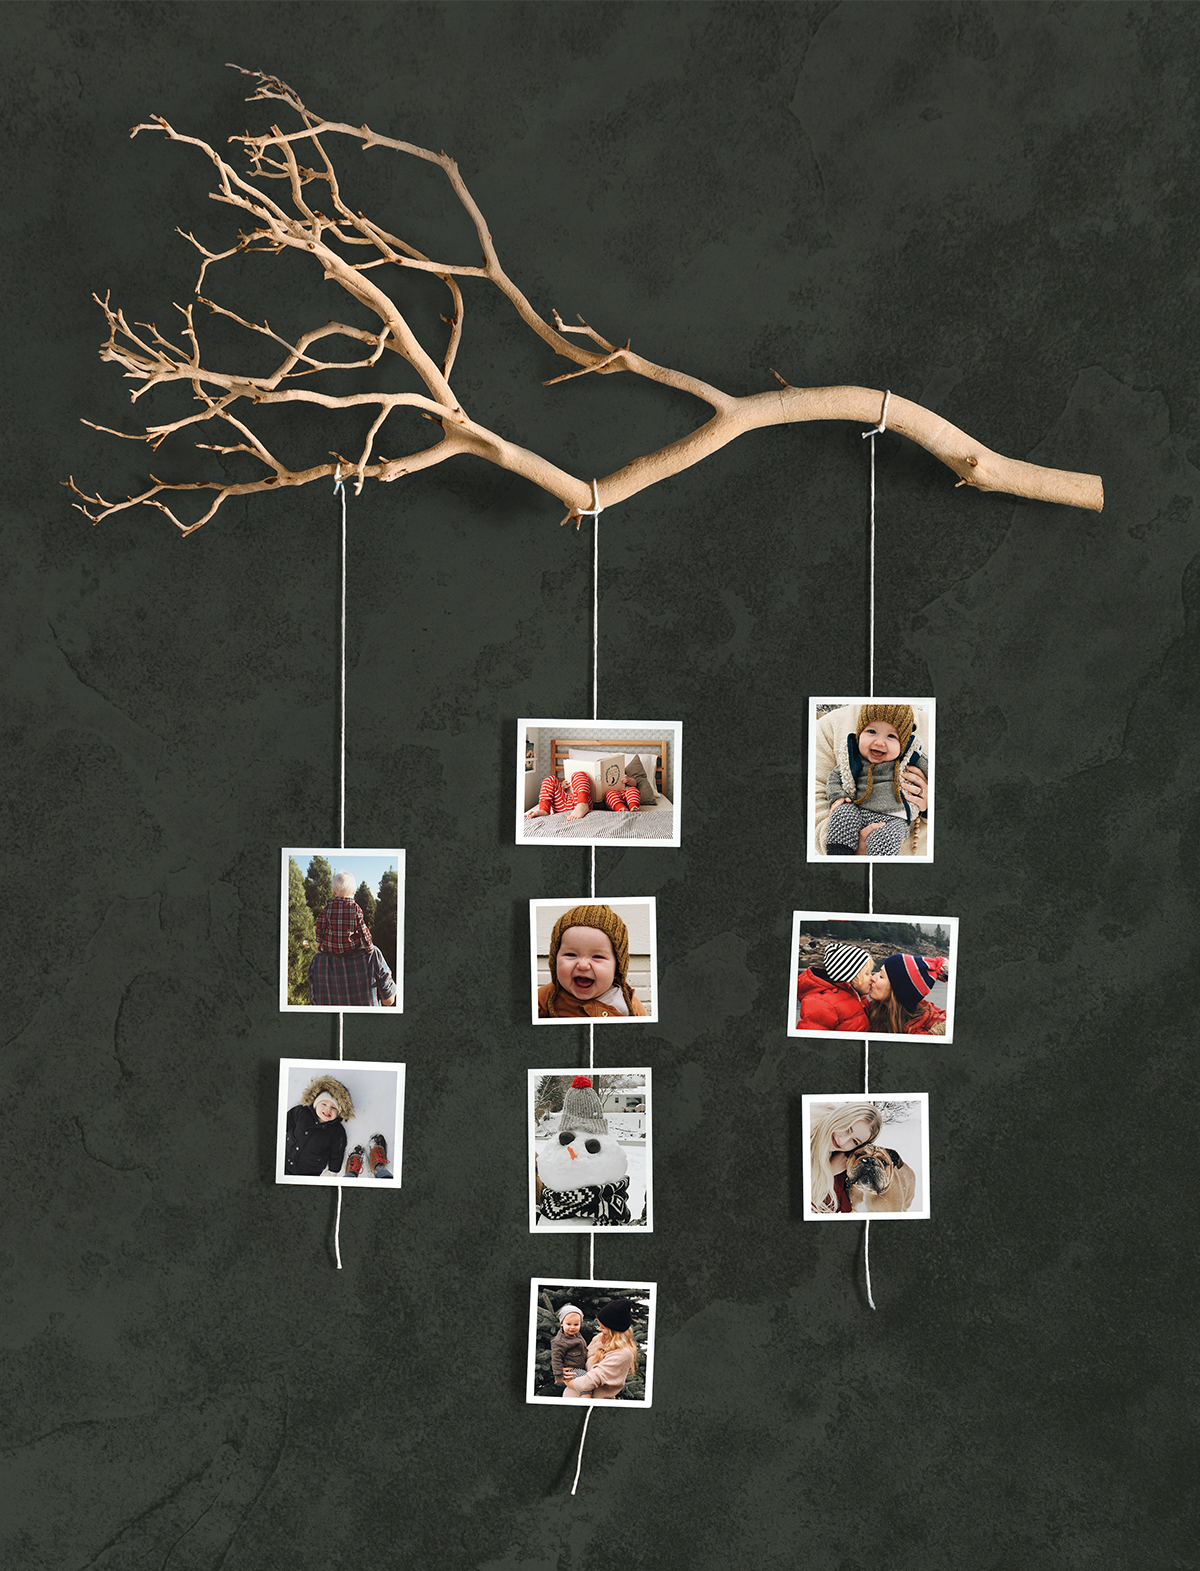 Photo prints hanging from branch attached to wall